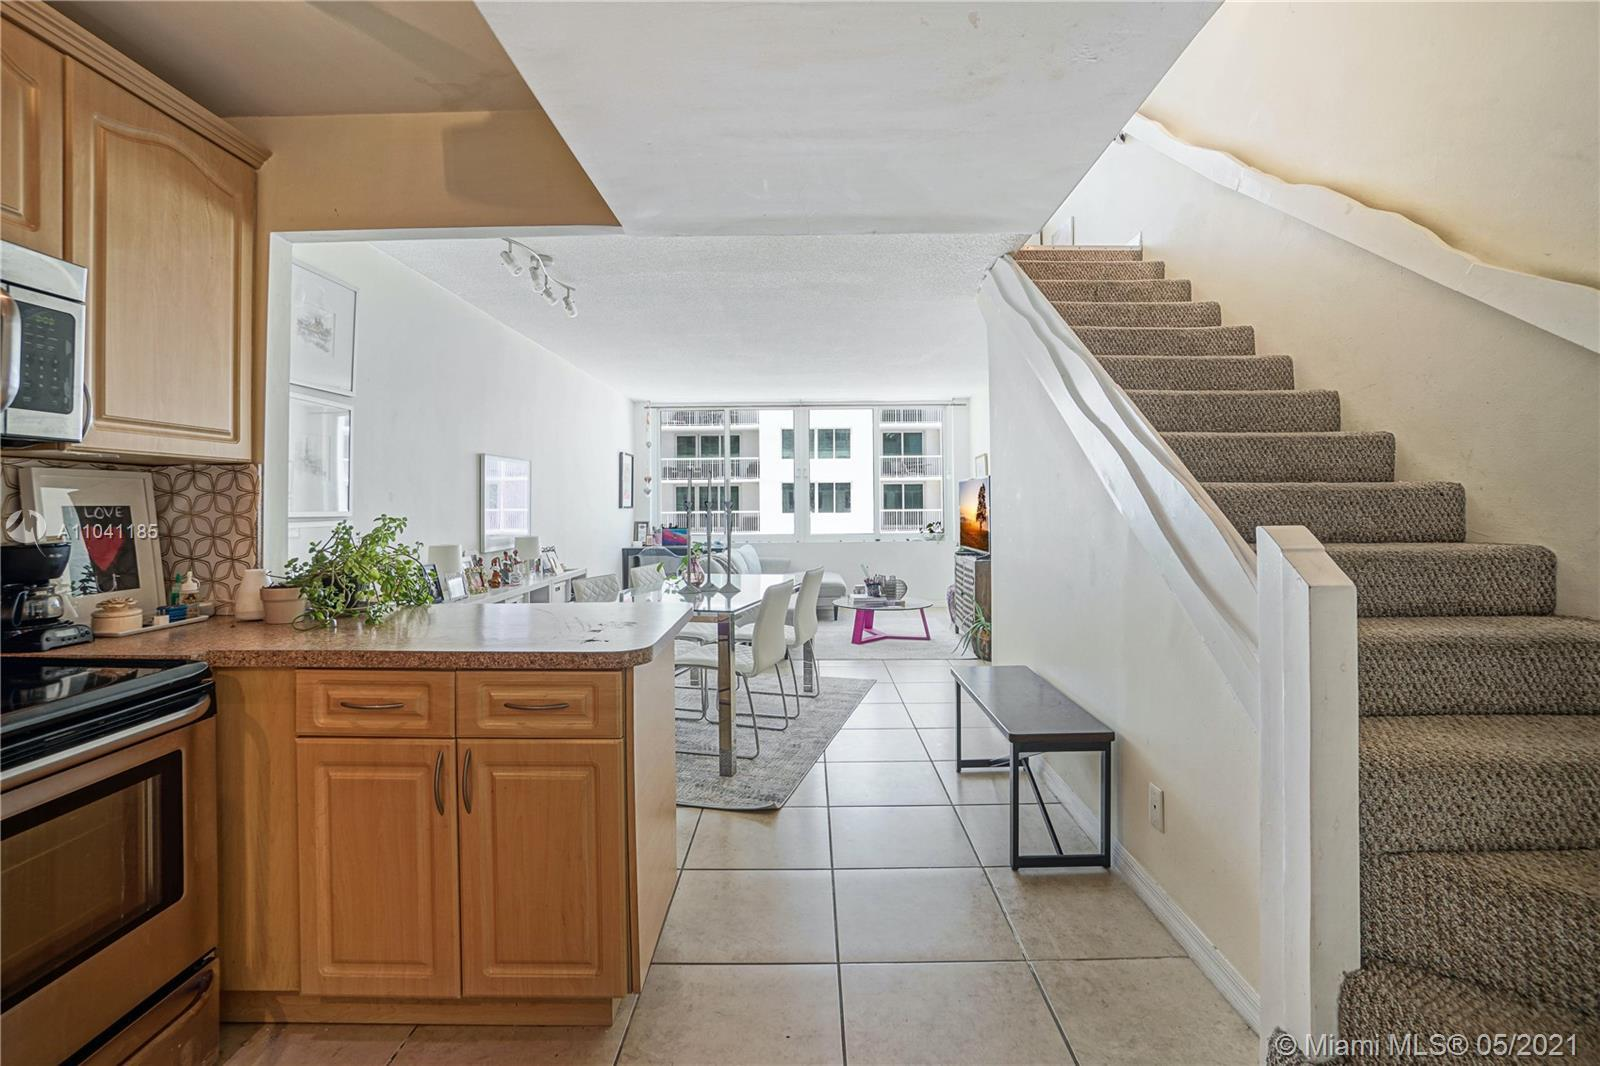 Two Story Oceanfront Townhouse in Miami Beach Millionaires row. Townhome features- one bedroom plus